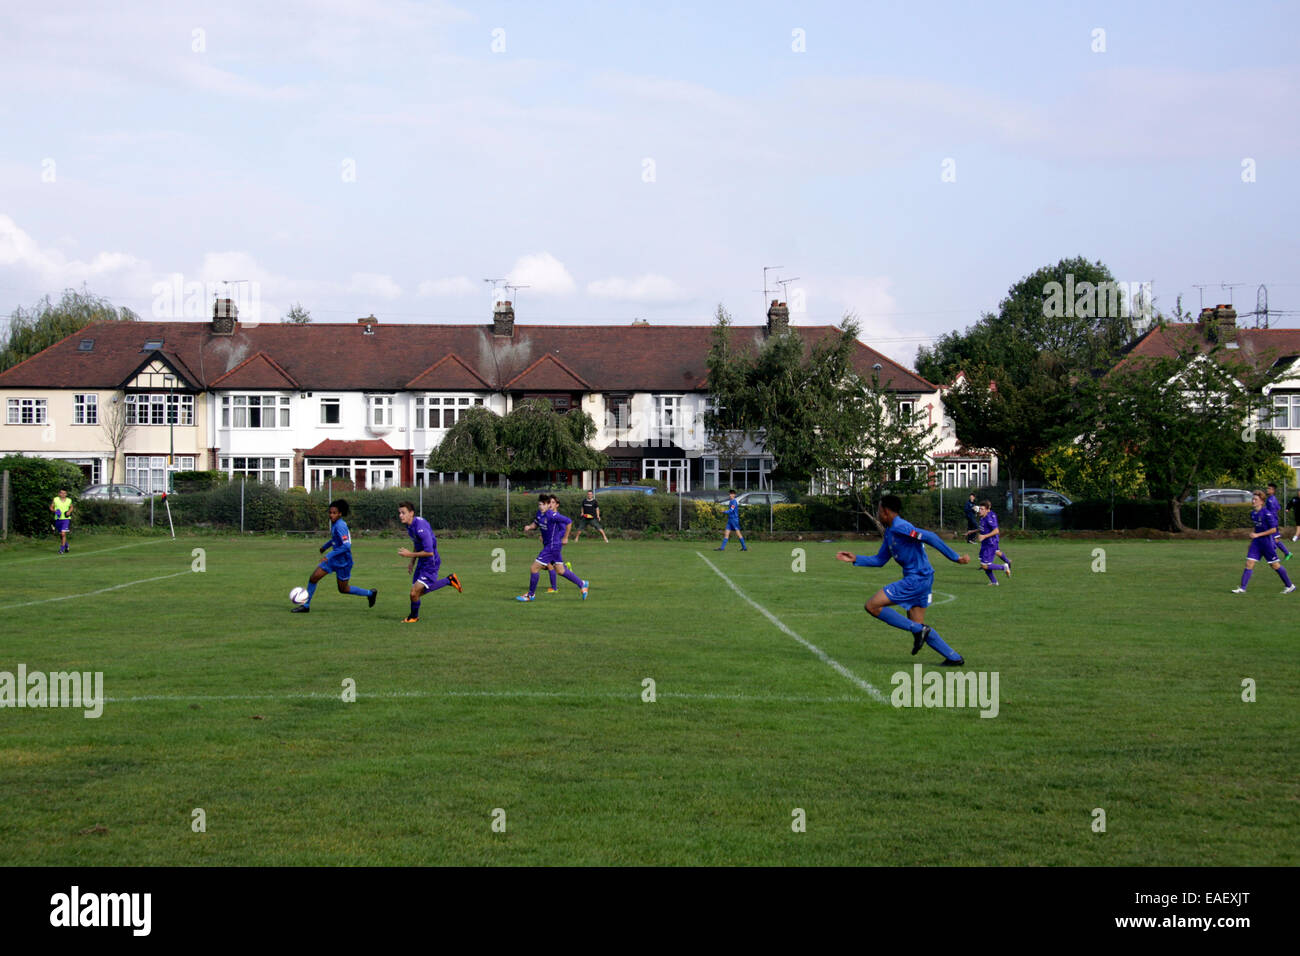 Sunday league football in a park in Wanstead, London - Stock Image